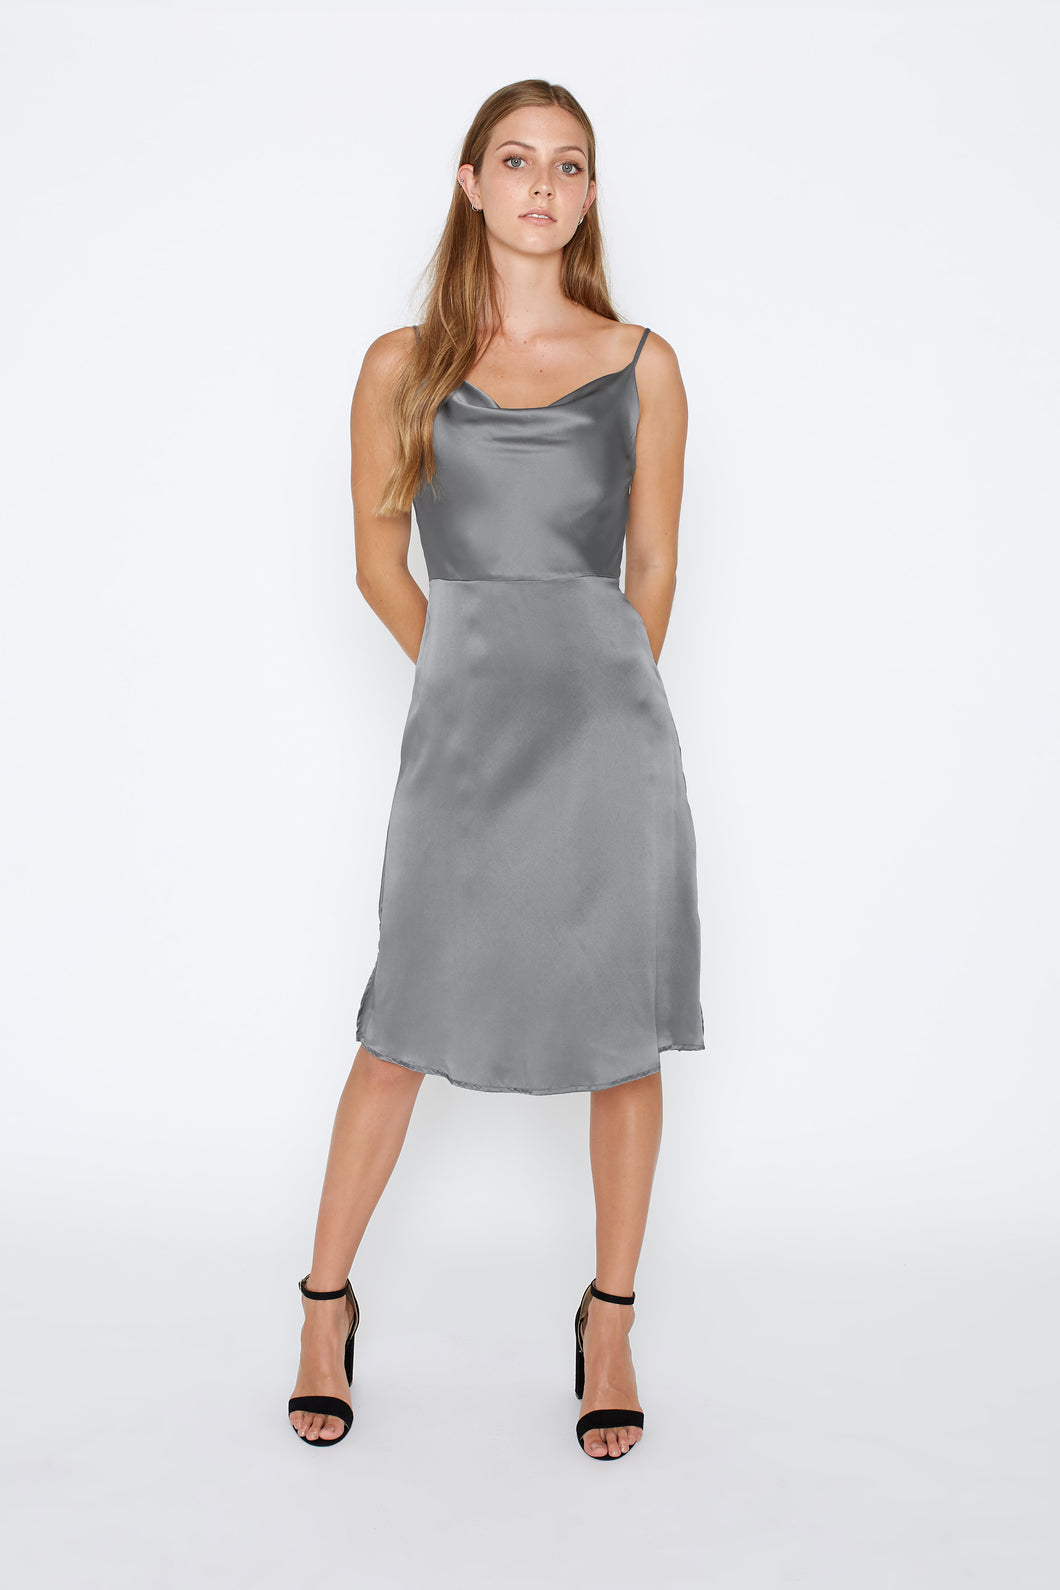 Amy Dress - Gunmetal Grey - Size 8